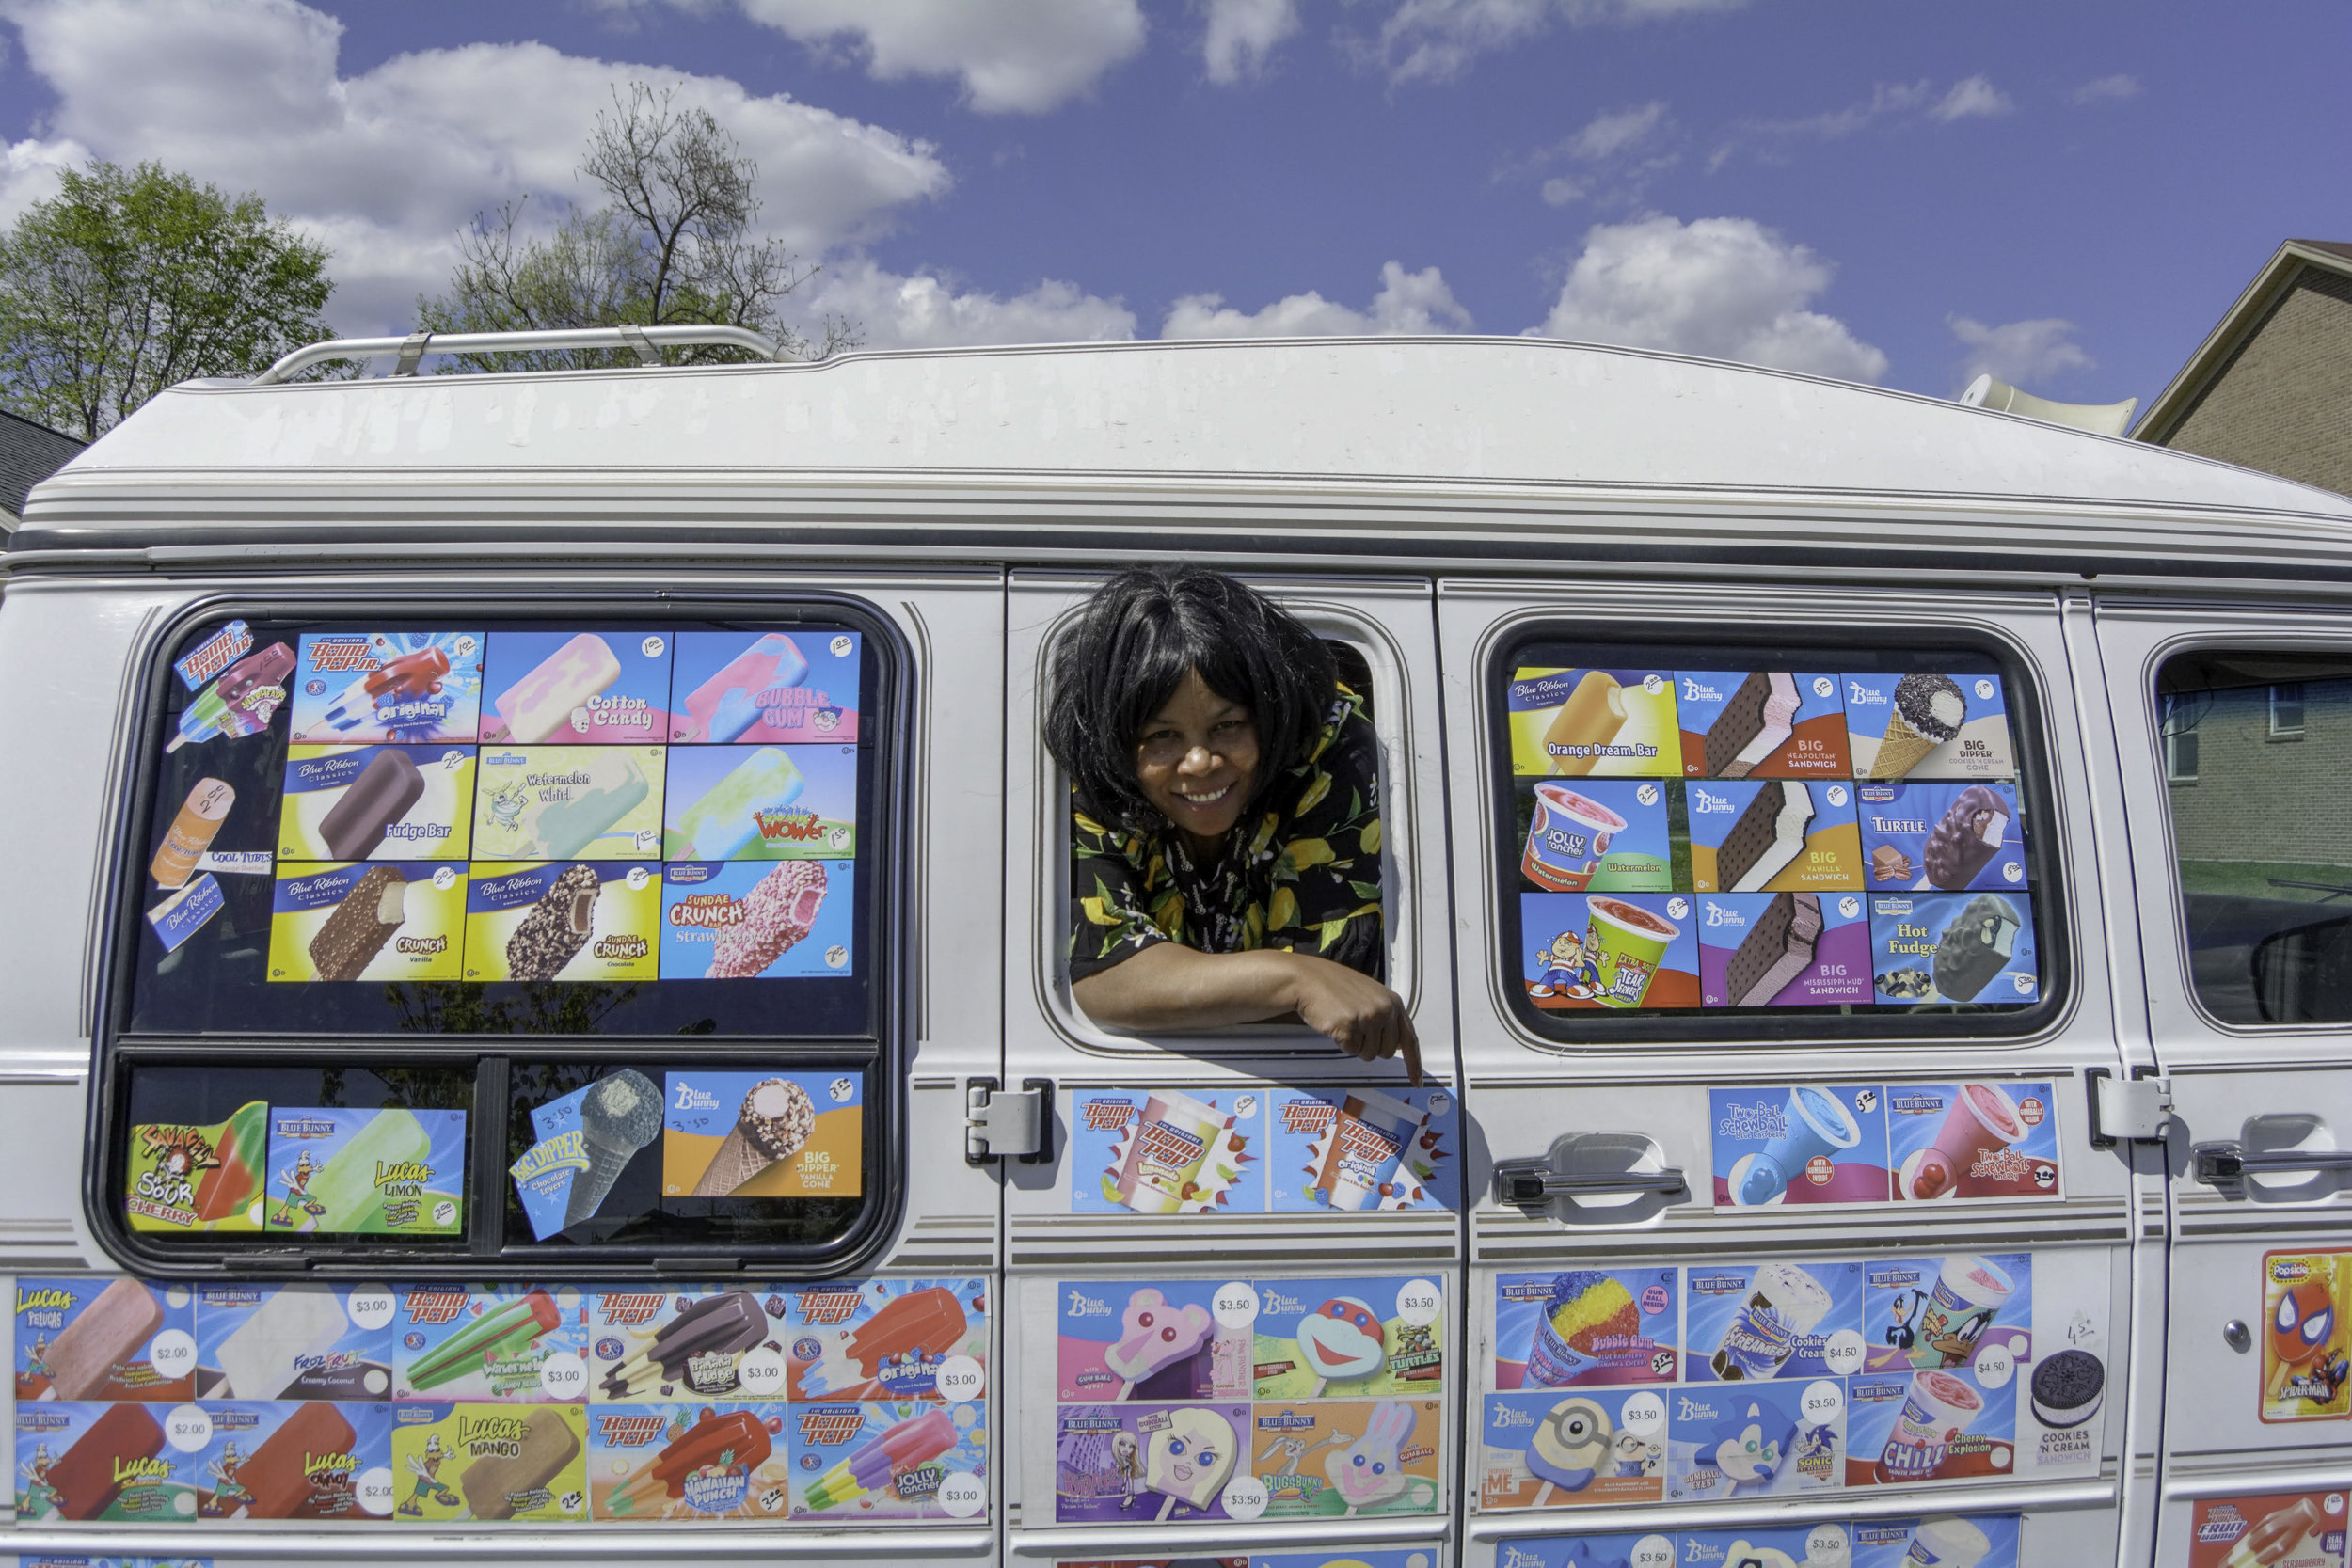 """""""The West End needs more stuff for the youth to do. I ride through the neighborhoods and I see kids with a lot of energy but they don't have a place to release it. We need to focus on making sure that these kids have the best education. We need to read to them and teach them how to read and write. There should also be some fun things for them to do, like putting a play together, letting them do skits and stuff. We have to focus on the children."""" - Cheryl, Russell"""